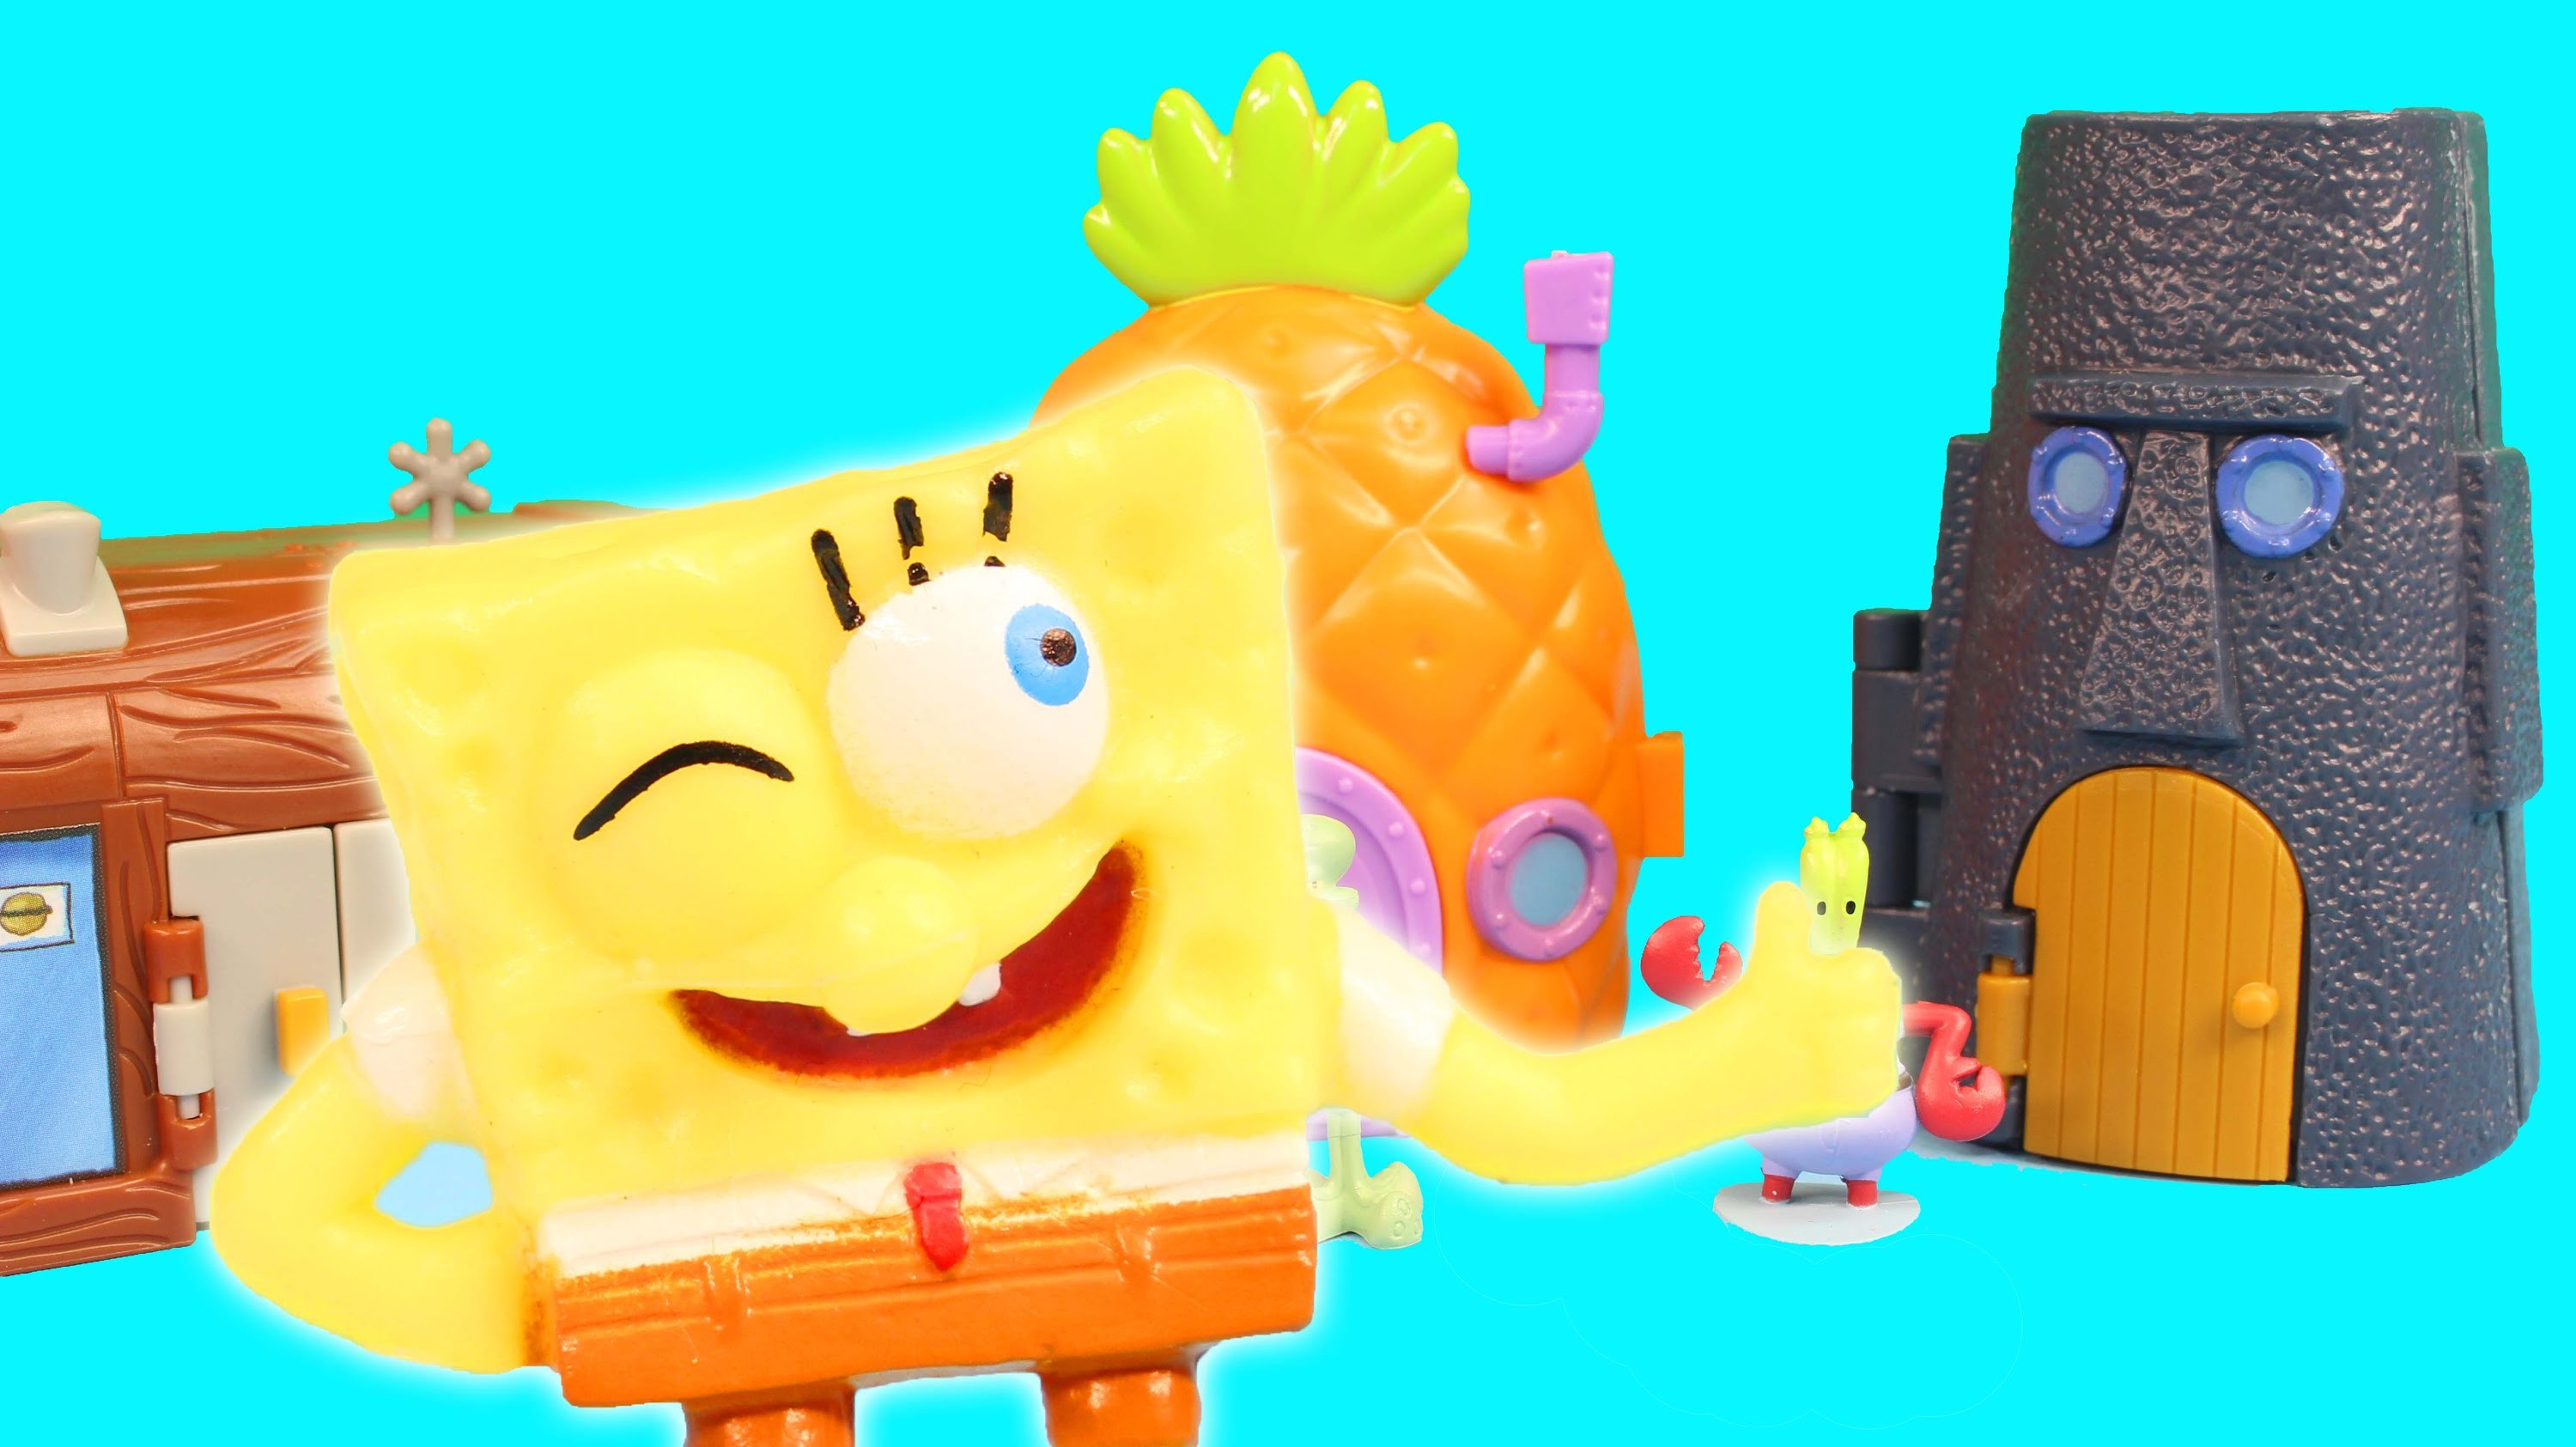 3000x1685 Pictures Of Spongebob Squarepants House Nickelodeon Spongebob Squarepants  Pineapple House Krusty Krab Decoration Ideas